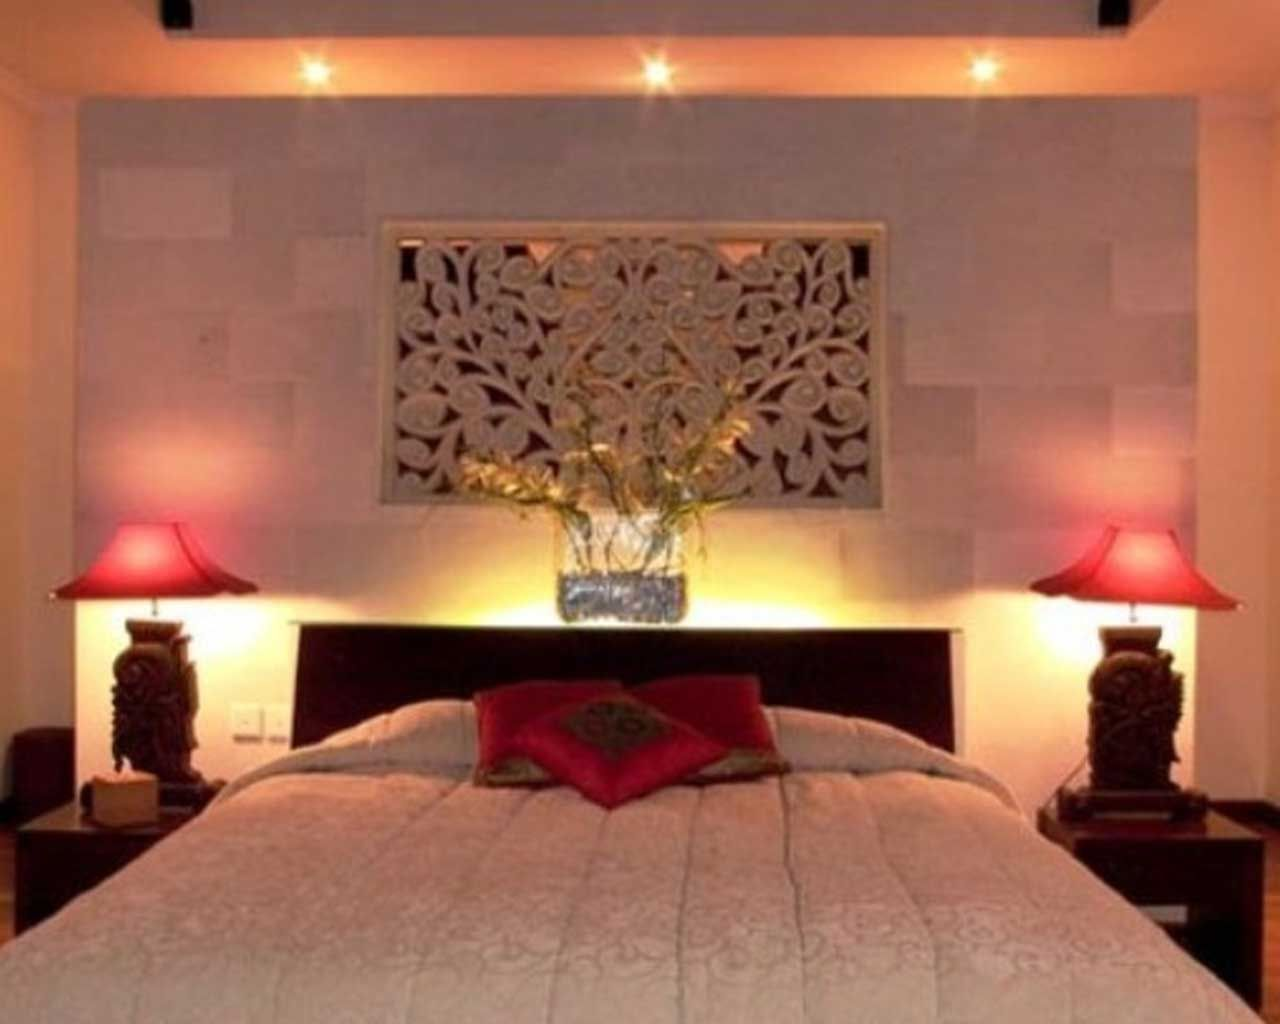 Bedroom romantic bedroom lighting ideas feats black for Black and white romantic bedroom ideas